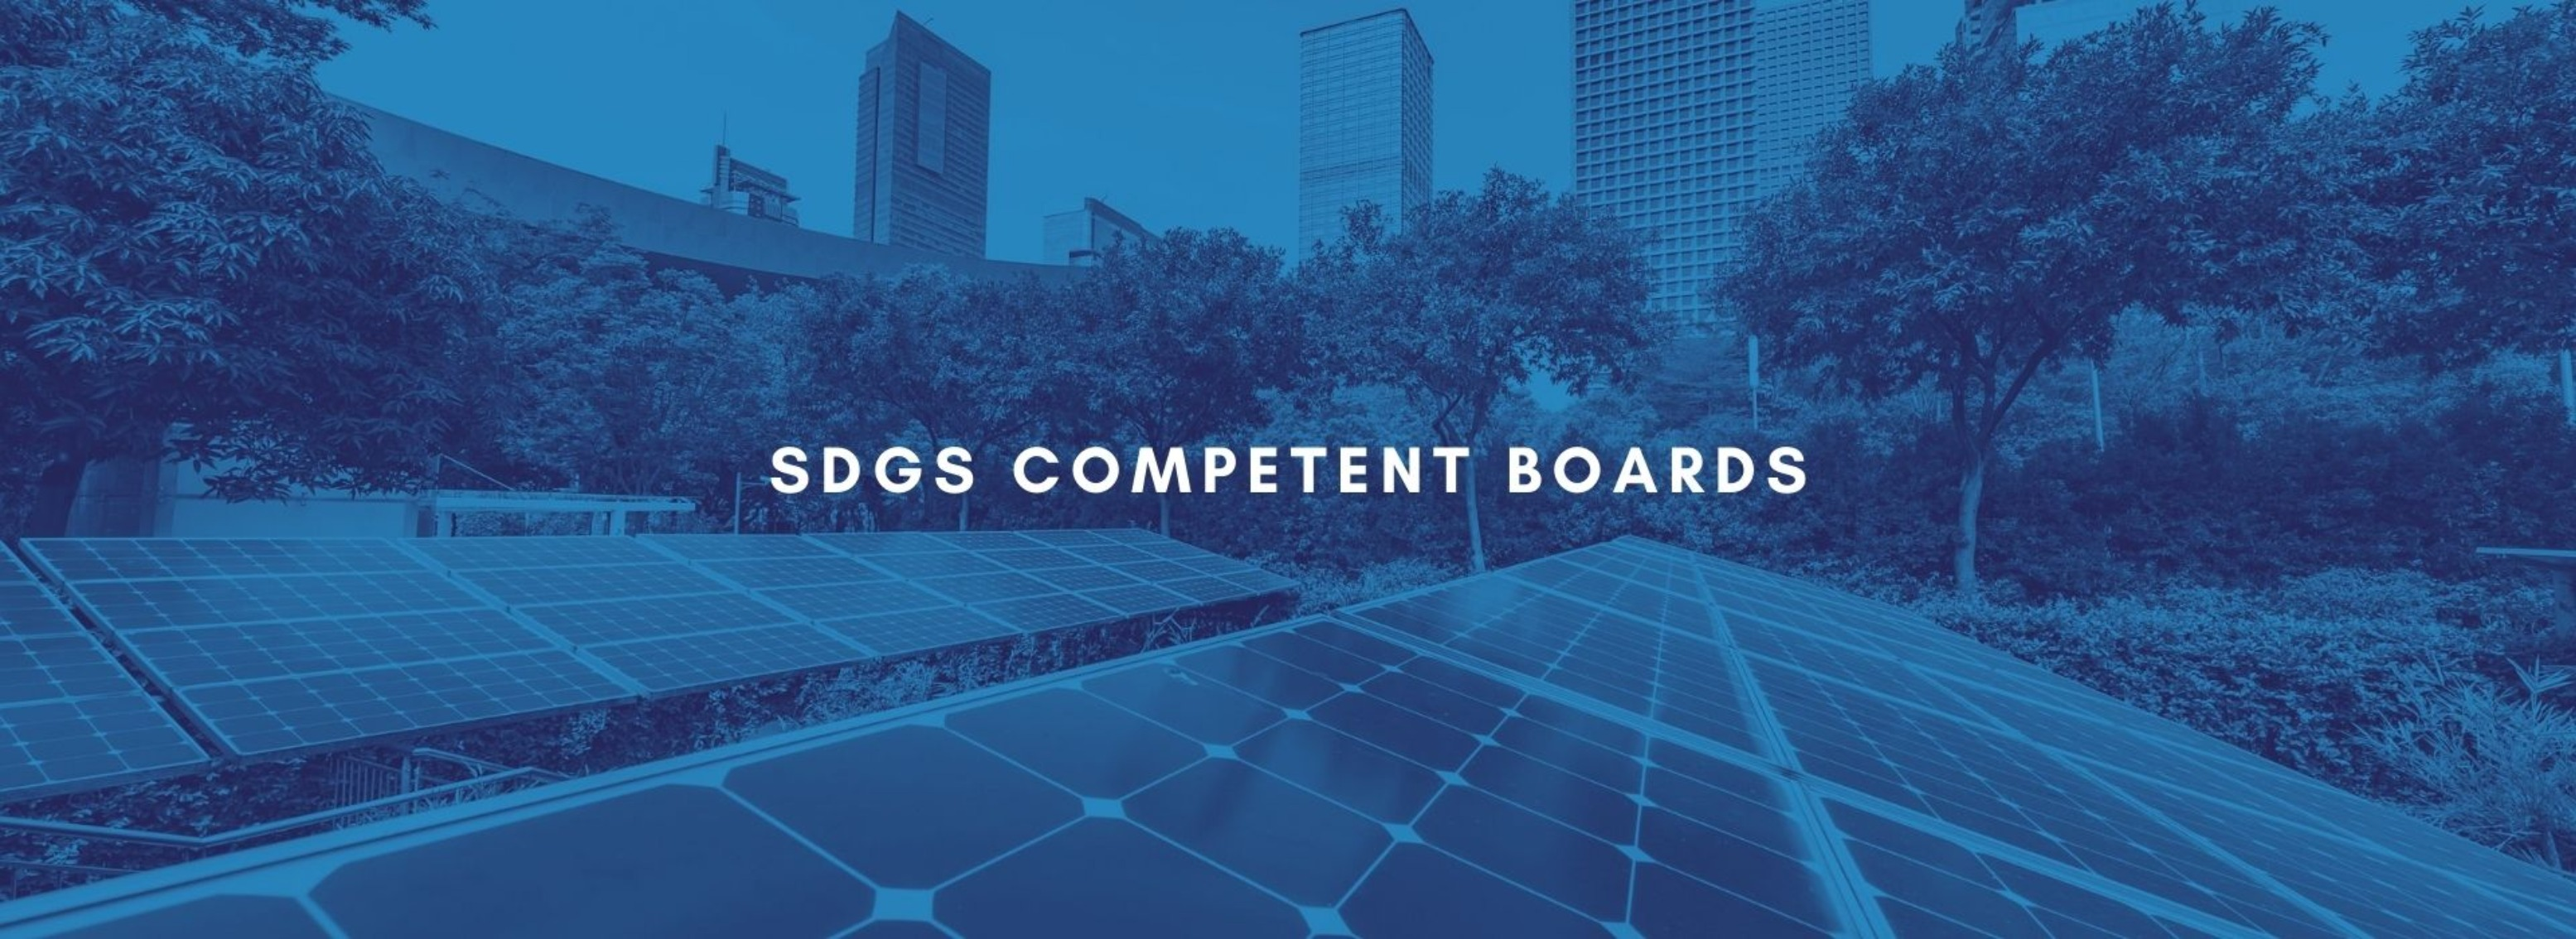 BP | SDGs Competent Boards | March 9th, 2021